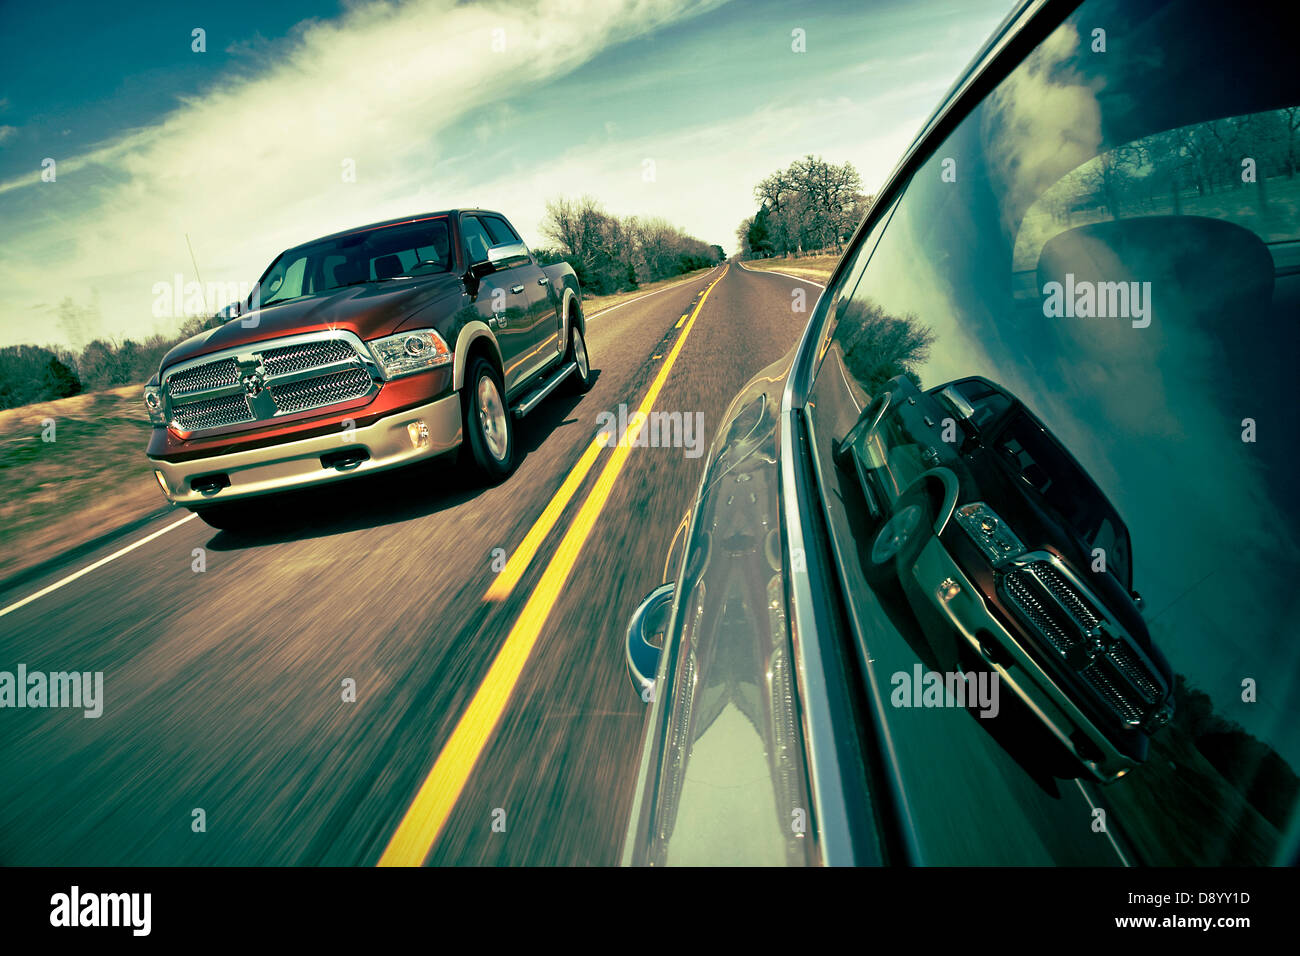 Dodge Ram  1500 Laramie Longhorn  pick up truck driving on a ranch road in Texas USA - Stock Image